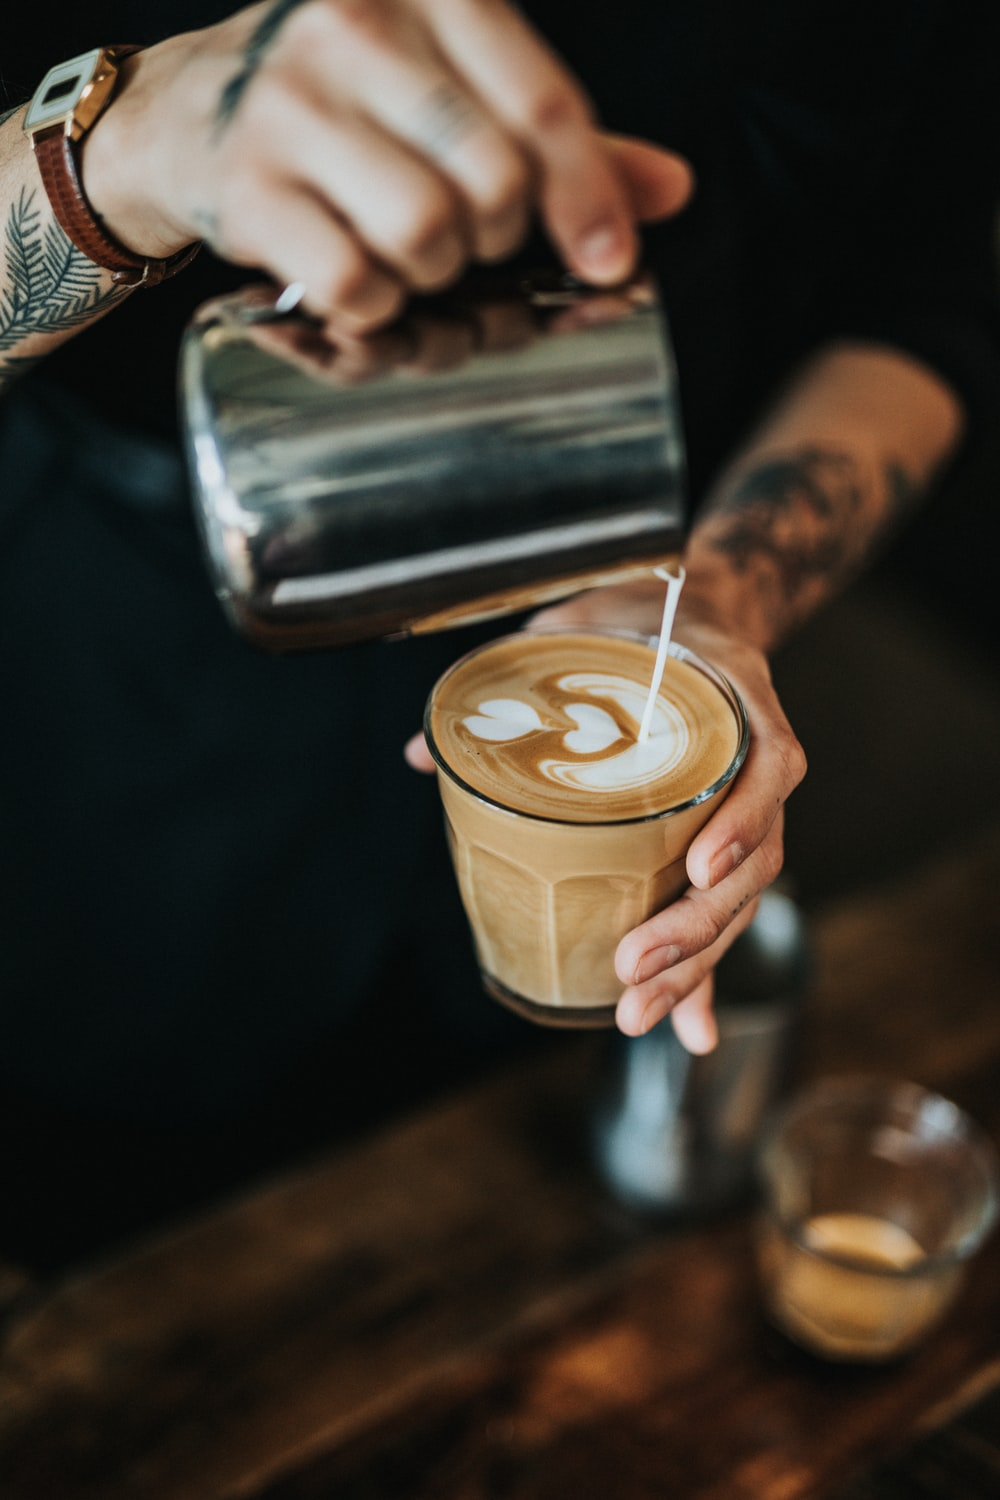 man pouring milk in coffee